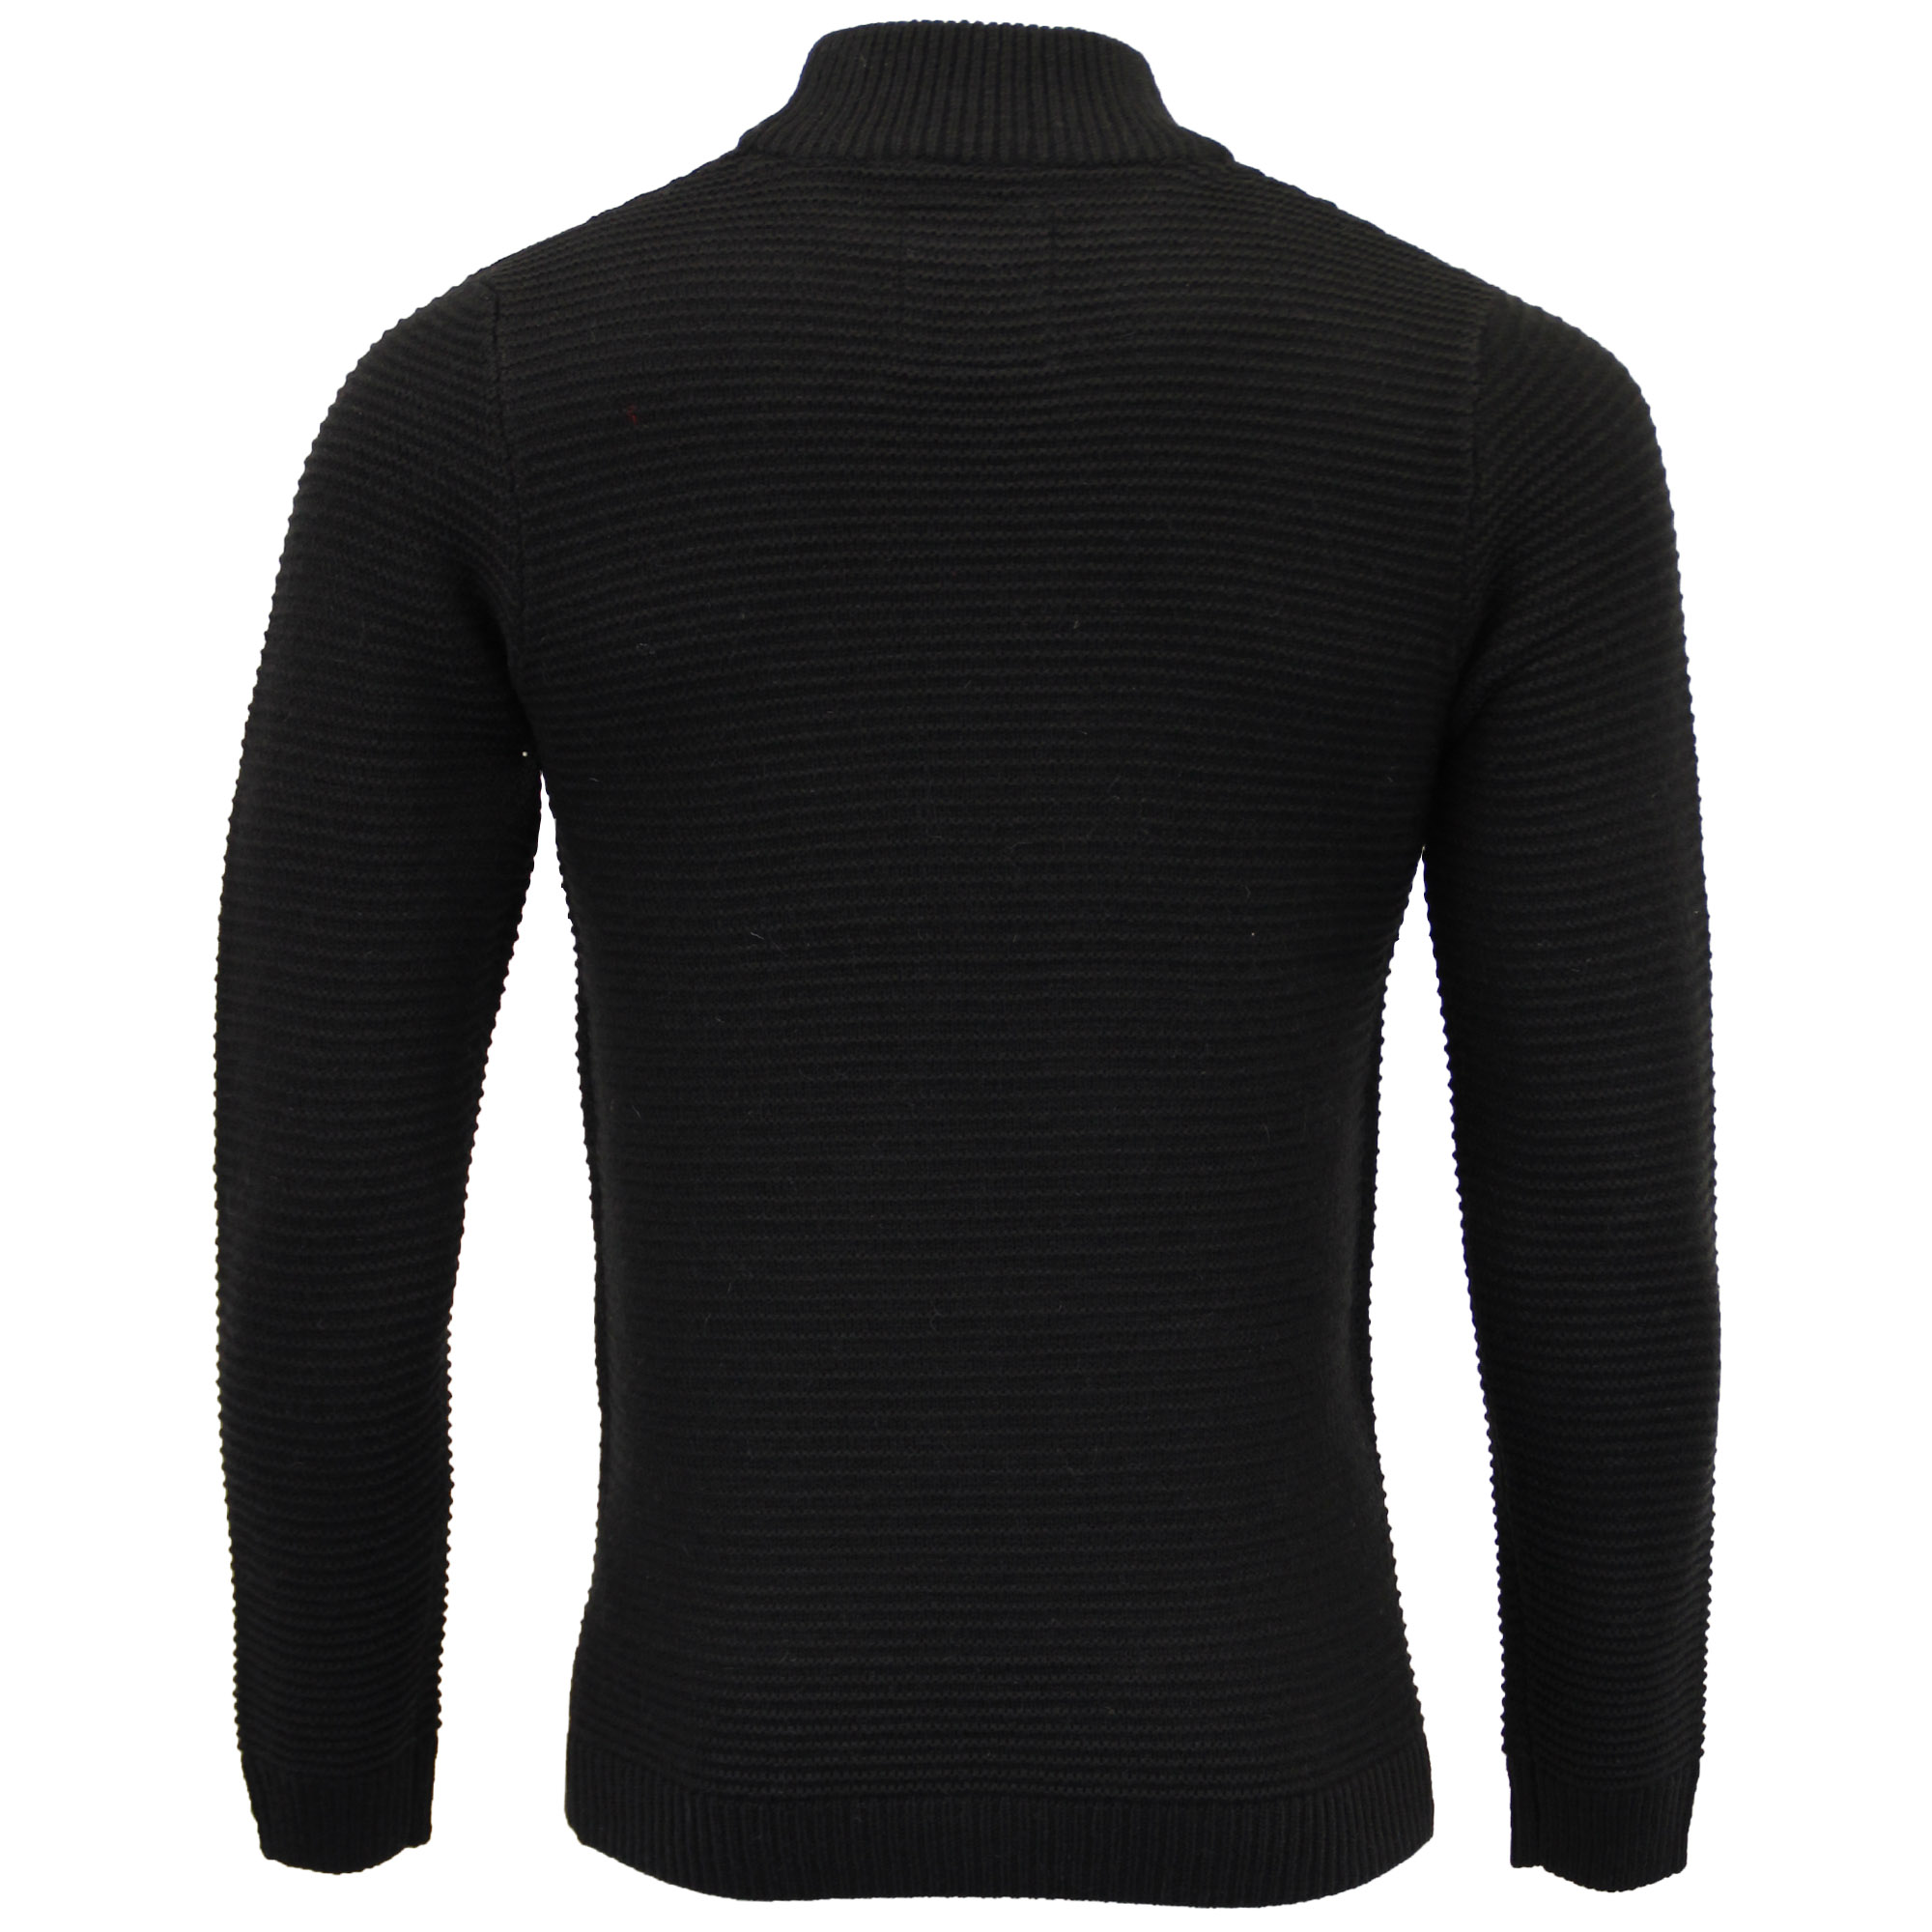 Mens-Polo-Neck-Wool-Mix-Jumper-Threadbare-Knitted-Sweater-Top-Waffle-Winter-New thumbnail 6